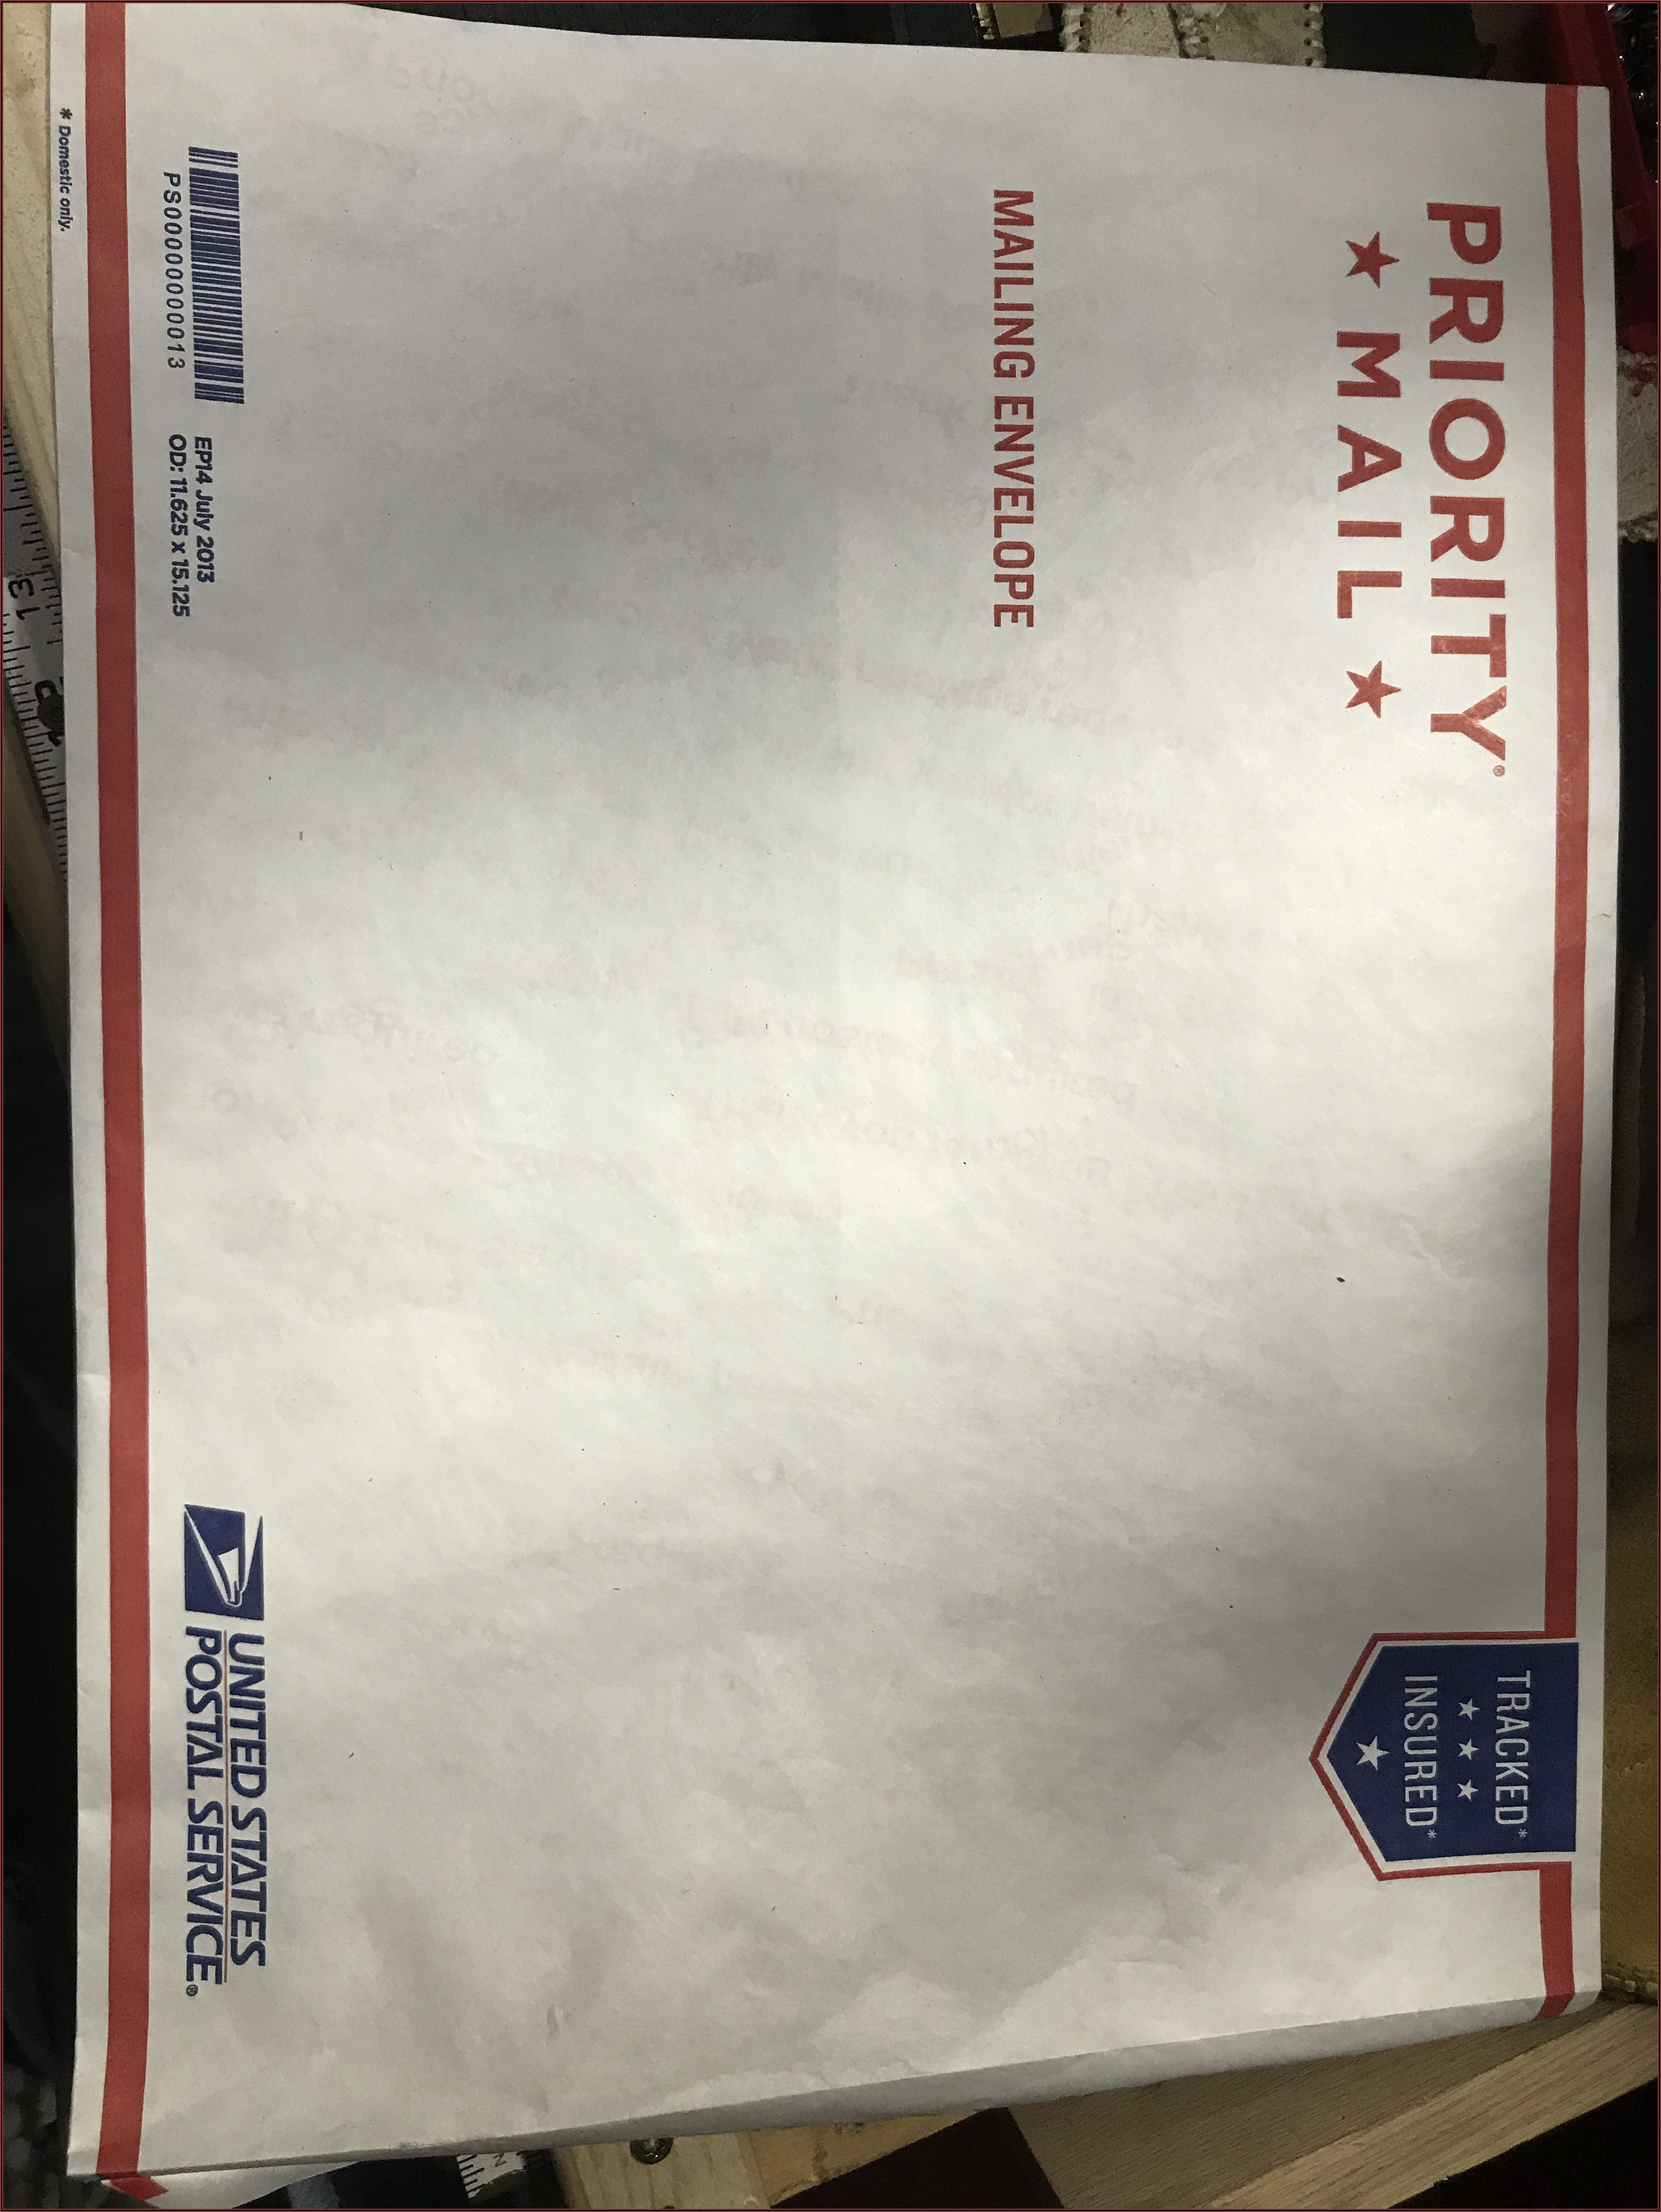 Priority Mail Envelope Postage Rate